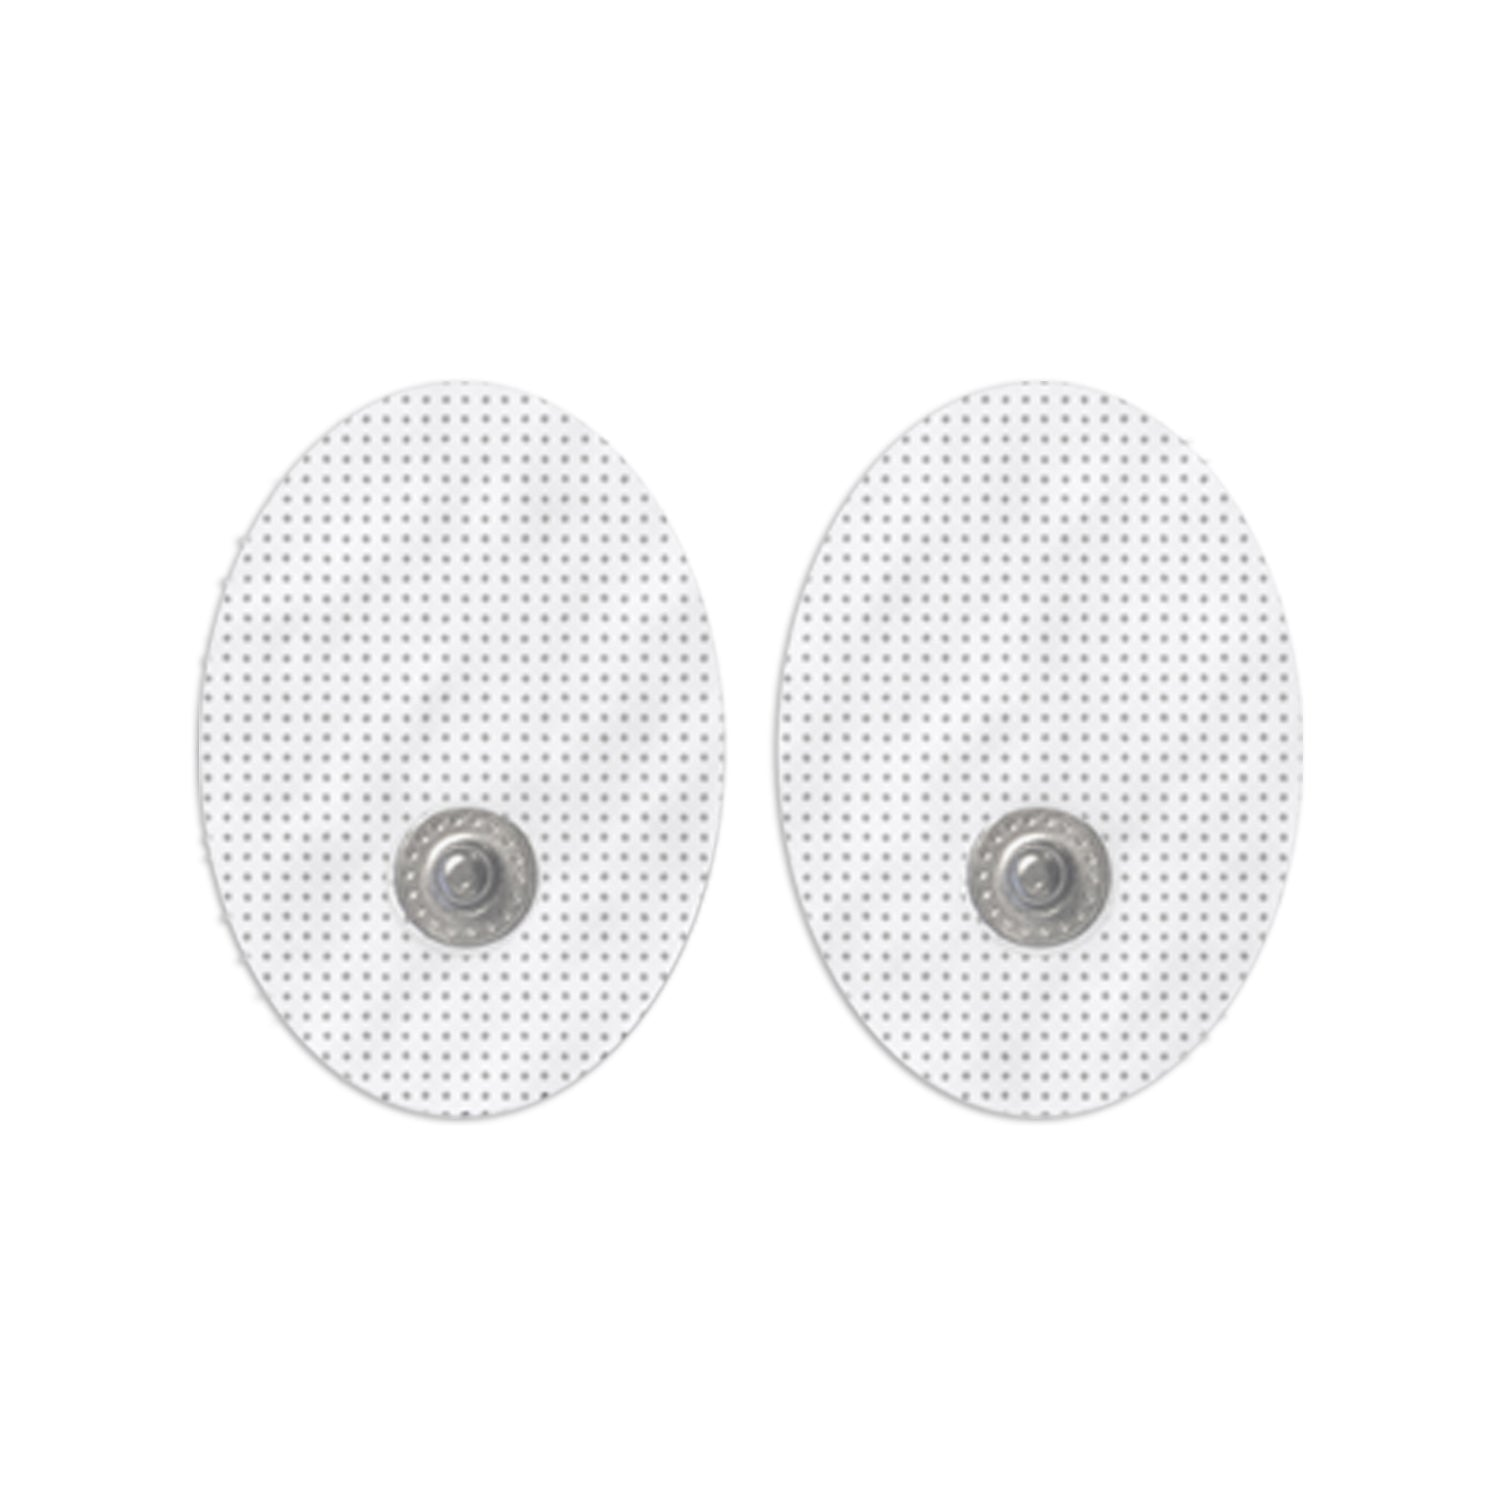 10 Pairs (20 Pcs) White Pair of Snap-On Small Oval-Shaped Electrode Patches Pads - HealthmateForever